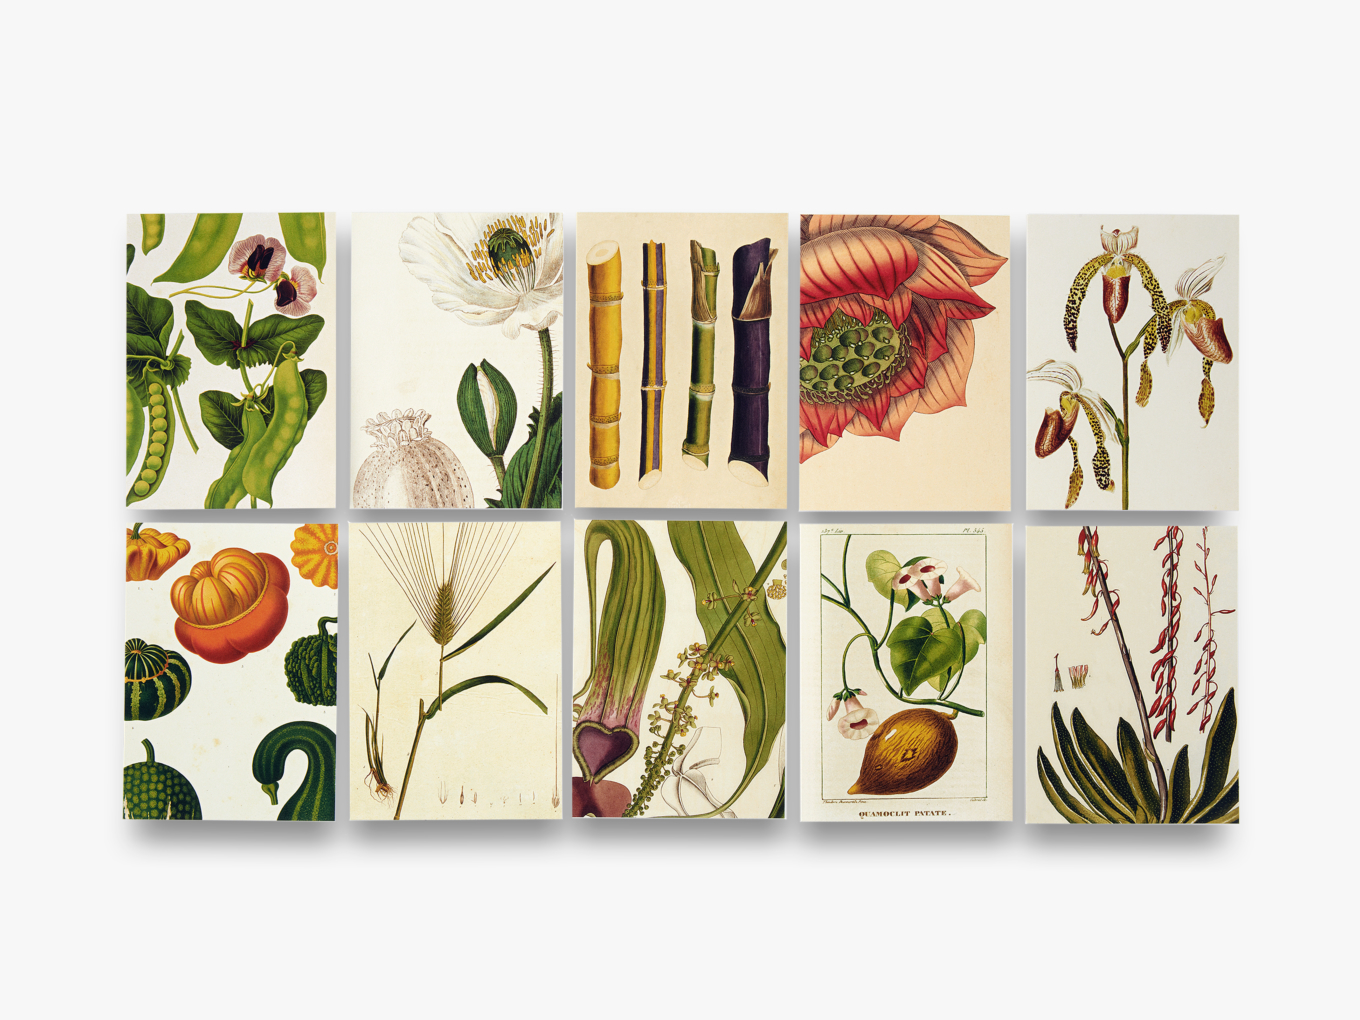 Remarkable Plants Box of 20 Notecards